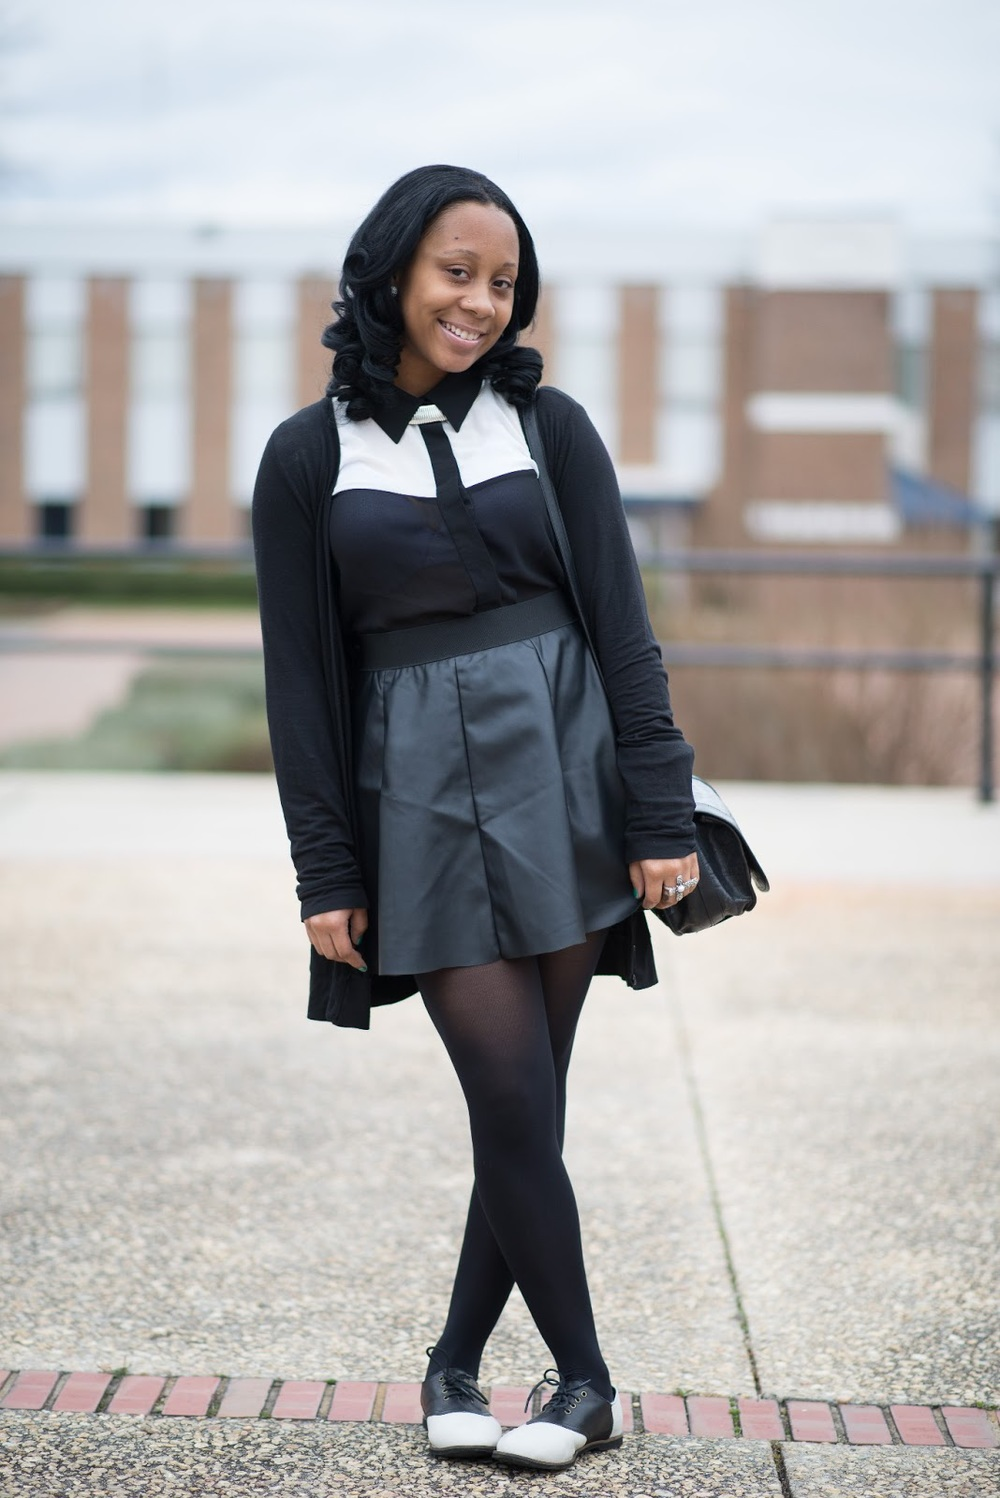 Deshaune is a student at St. Augustine's University in Raleigh, NC. She's wearing a monochromatic outfit. Black Cardigan, contrast white and black shirt over a high waist black skirt, a black leather bag and black and white saddle shoes